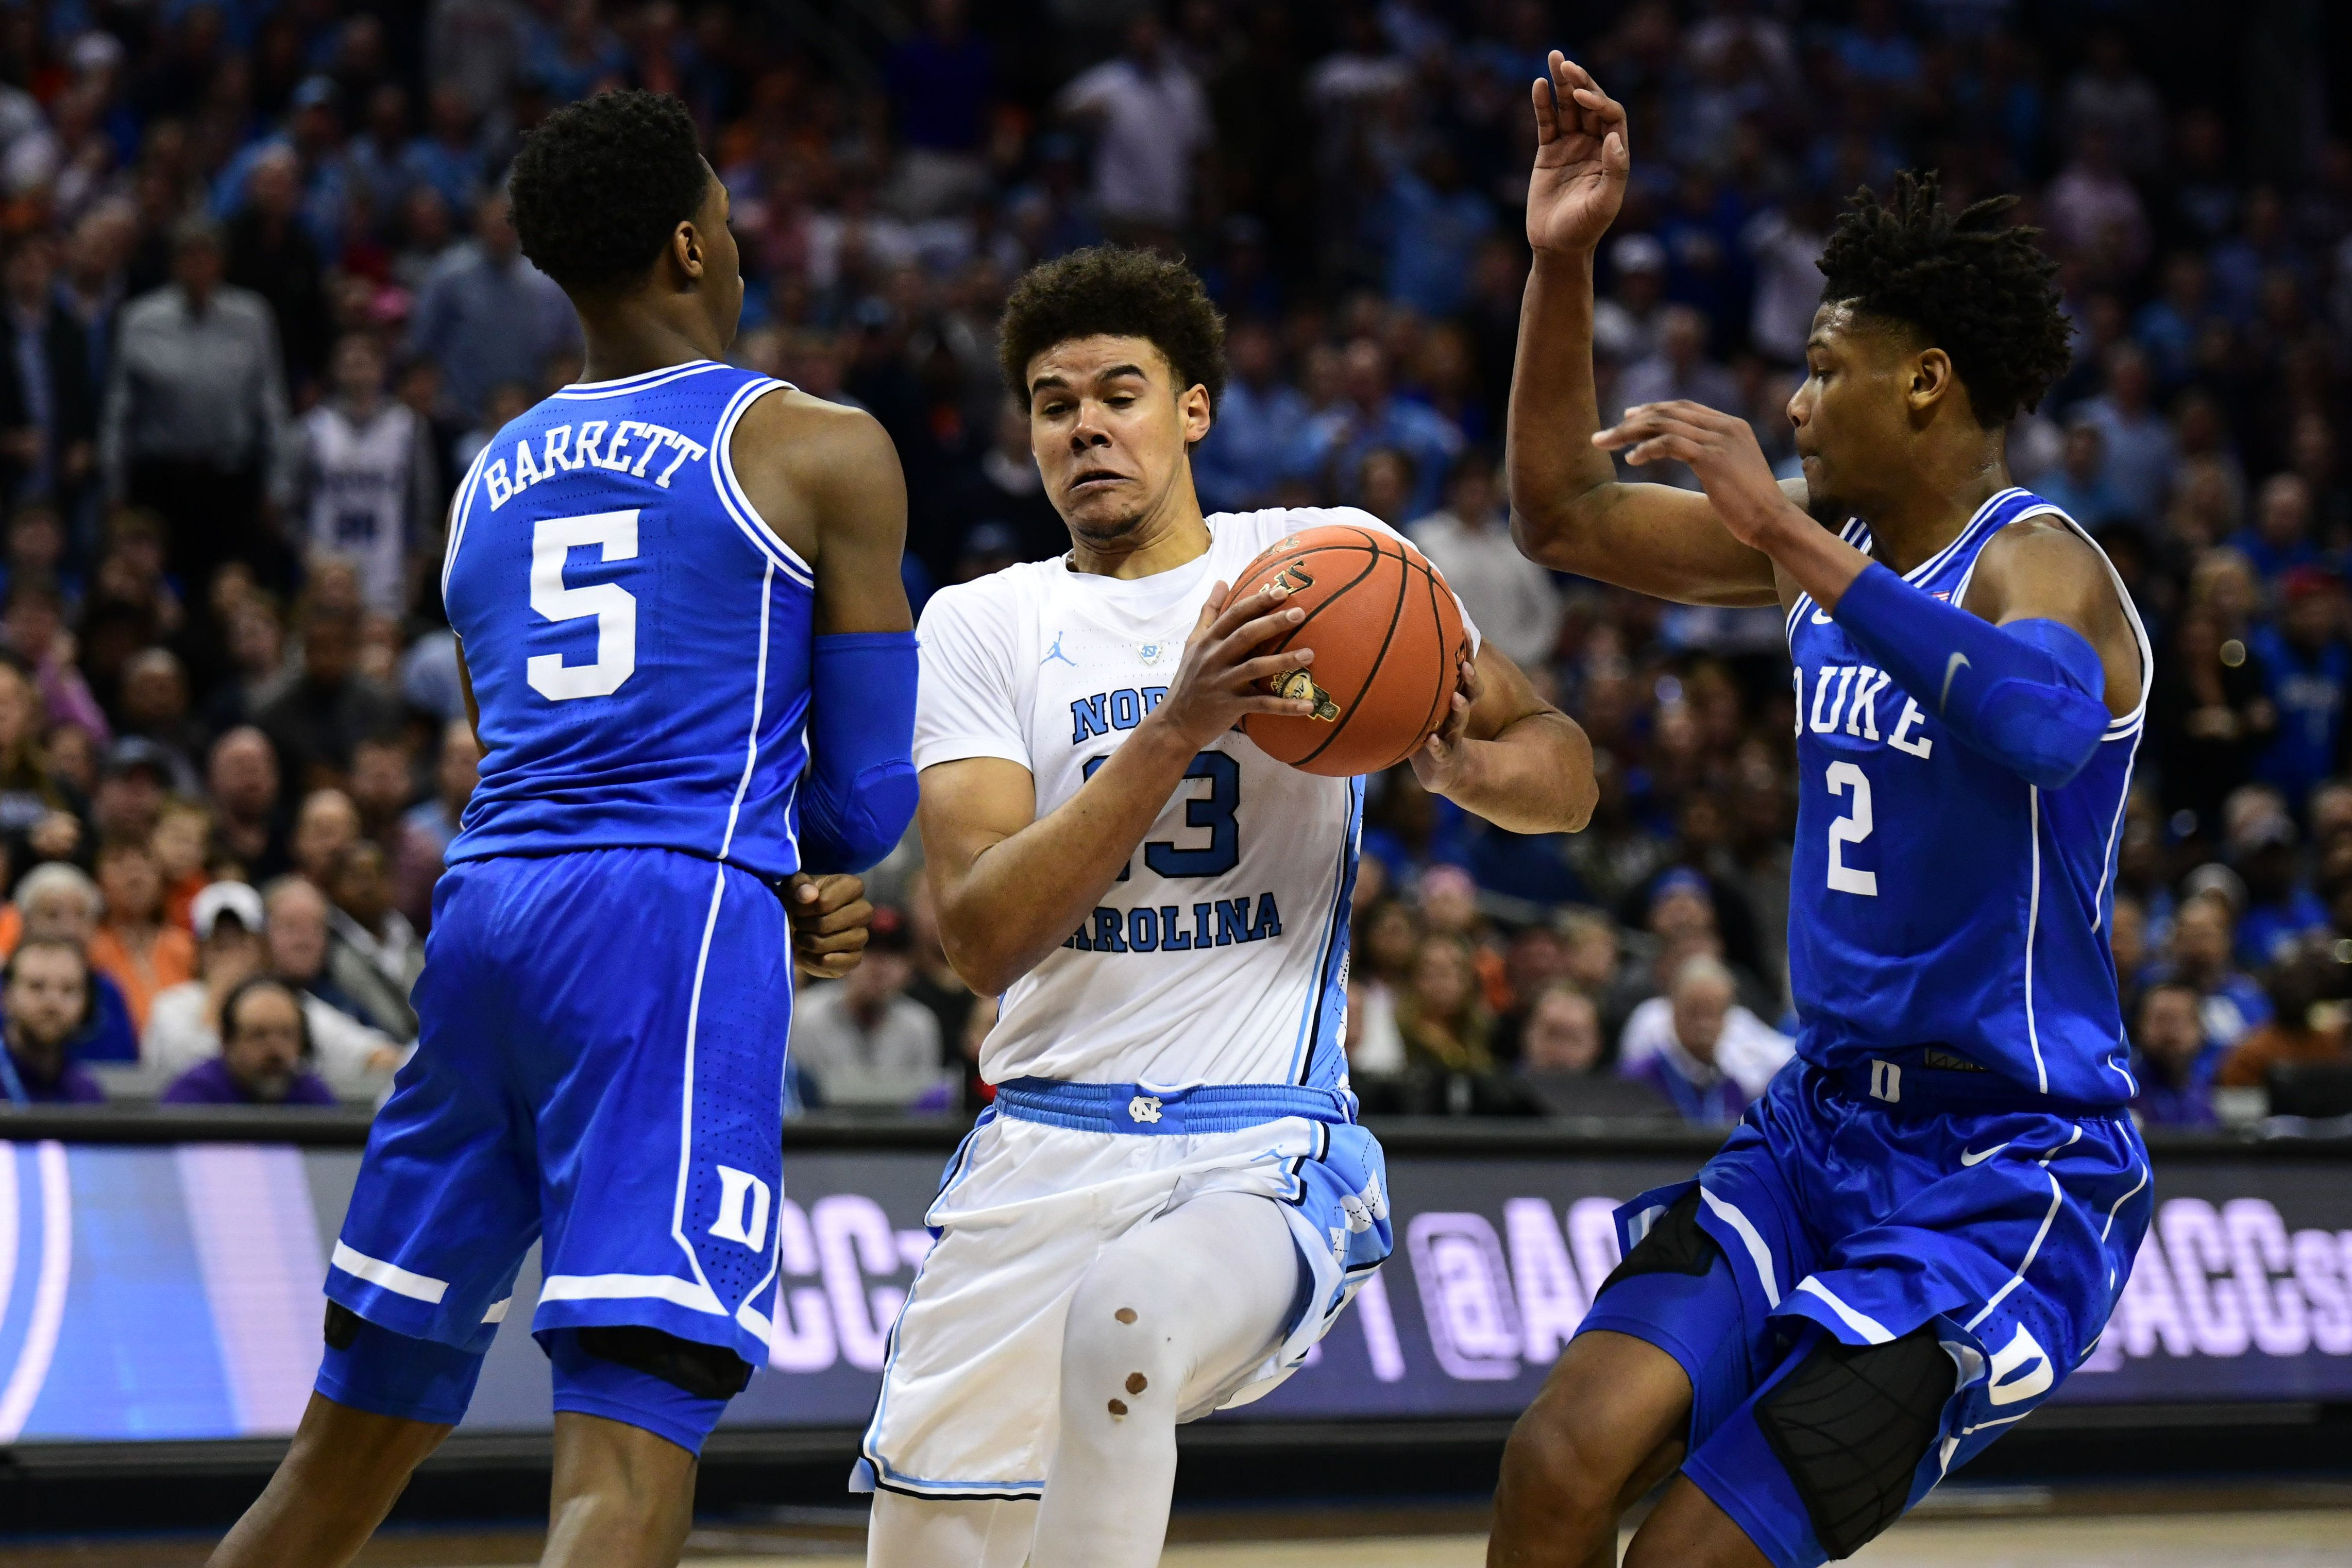 CHARLOTTE, NC - MARCH 15: North Carolina Tar Heels guard Cameron Johnson (13) drives through Duke Blue Devils forward RJ Barrett (5) and Duke Blue Devils forward Cam Reddish (2) during the ACC basketball tournament between the Duke Blue Devils and the North Carolina Tar Heels on March 15, 2019, at the Spectrum Center in Charlotte, NC. (Photo by William Howard/Icon Sportswire via Getty Images)